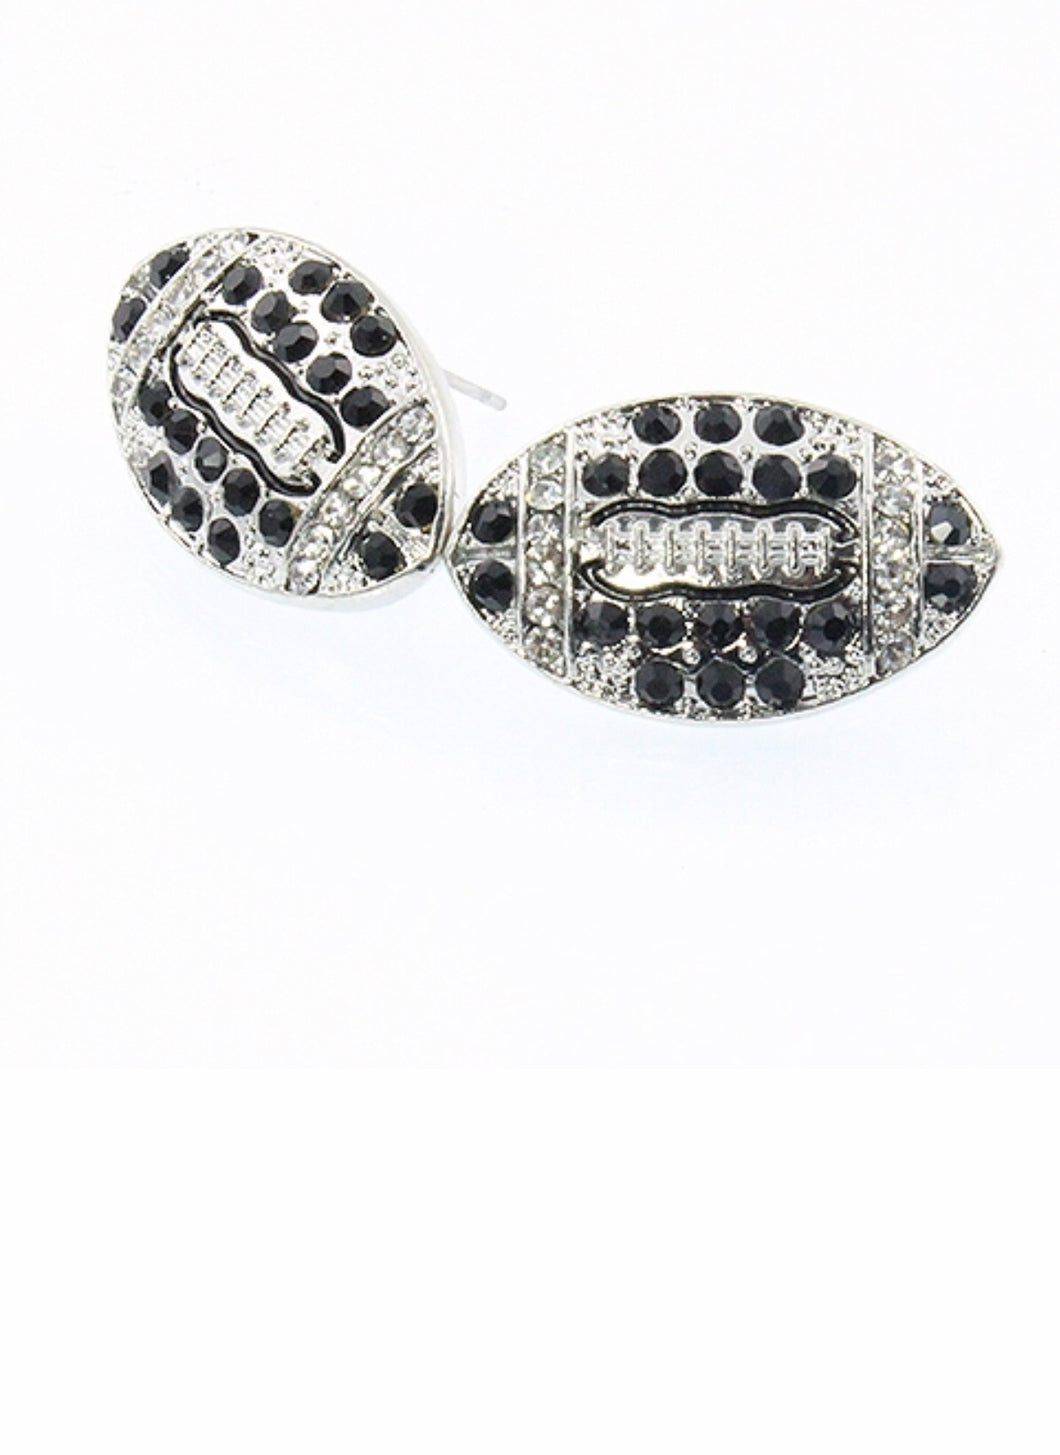 Razzle Dazzle Football stud earrings